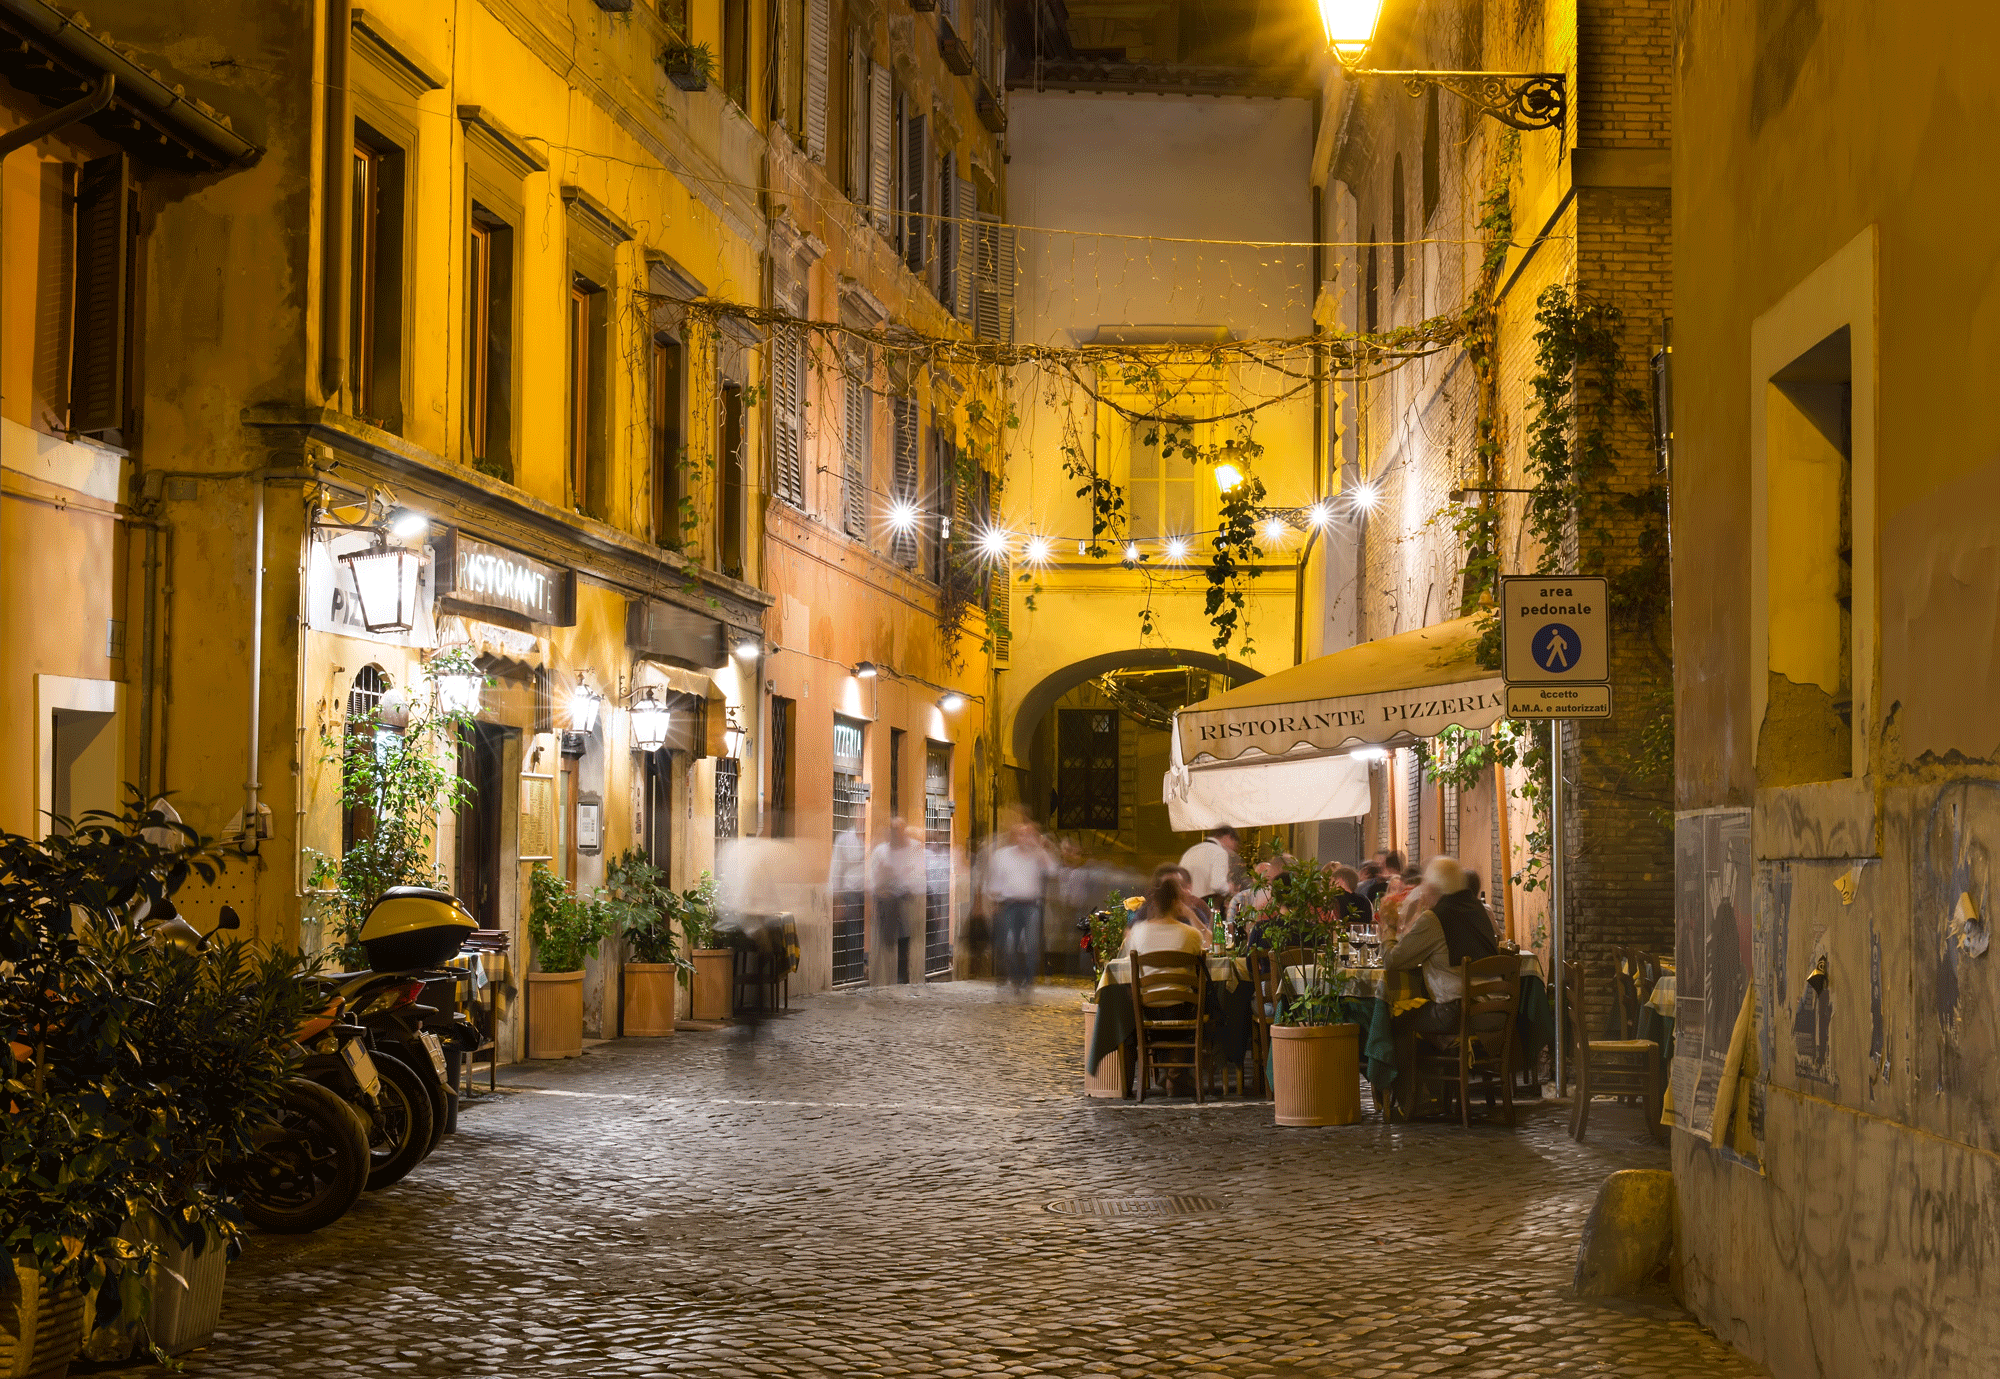 Old street in Trastevere in Rome, Italy.